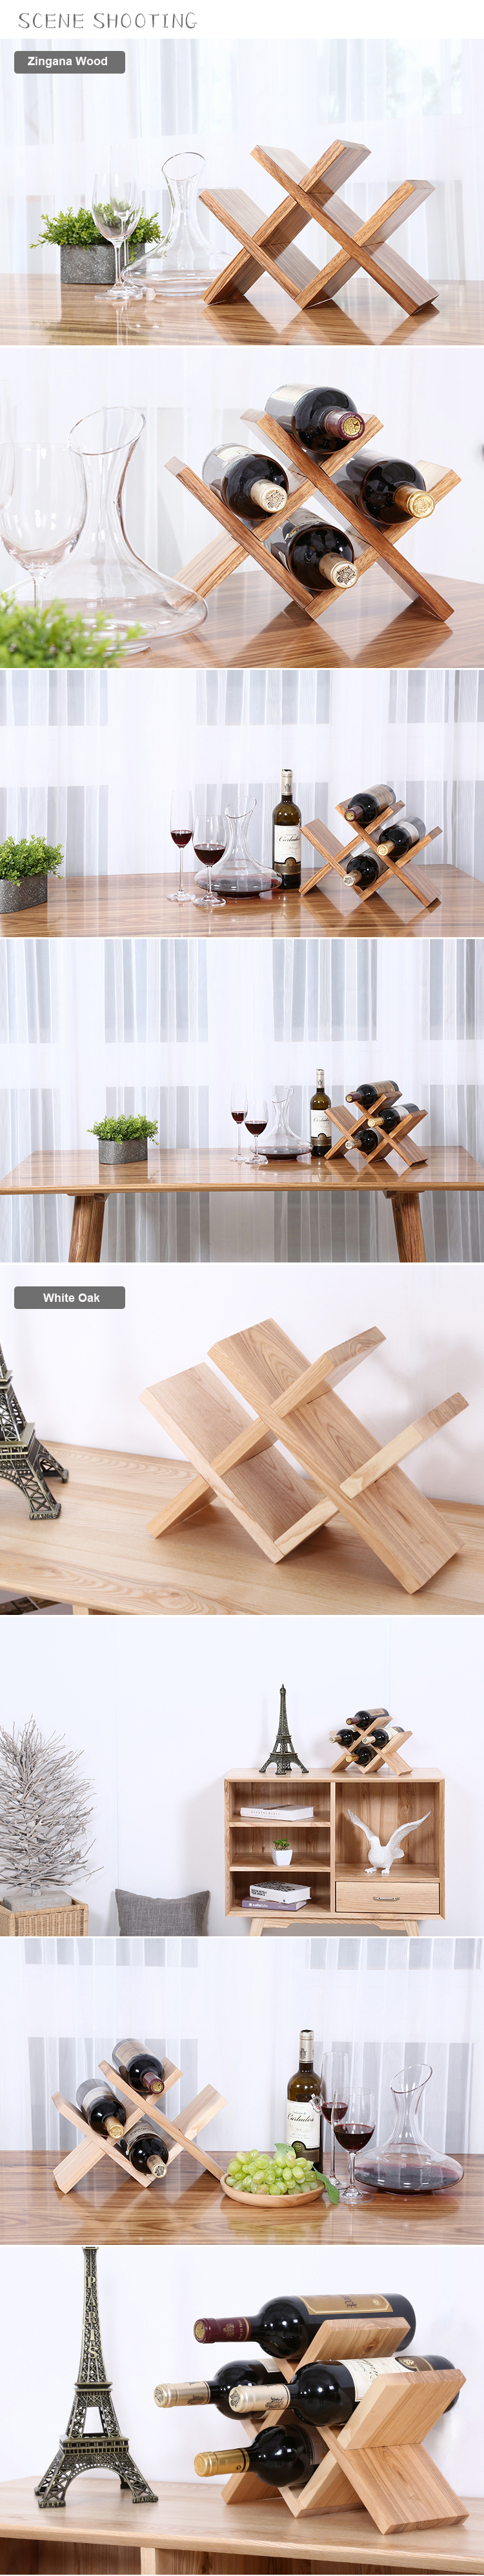 Detachable Wooden Wine Display Rack